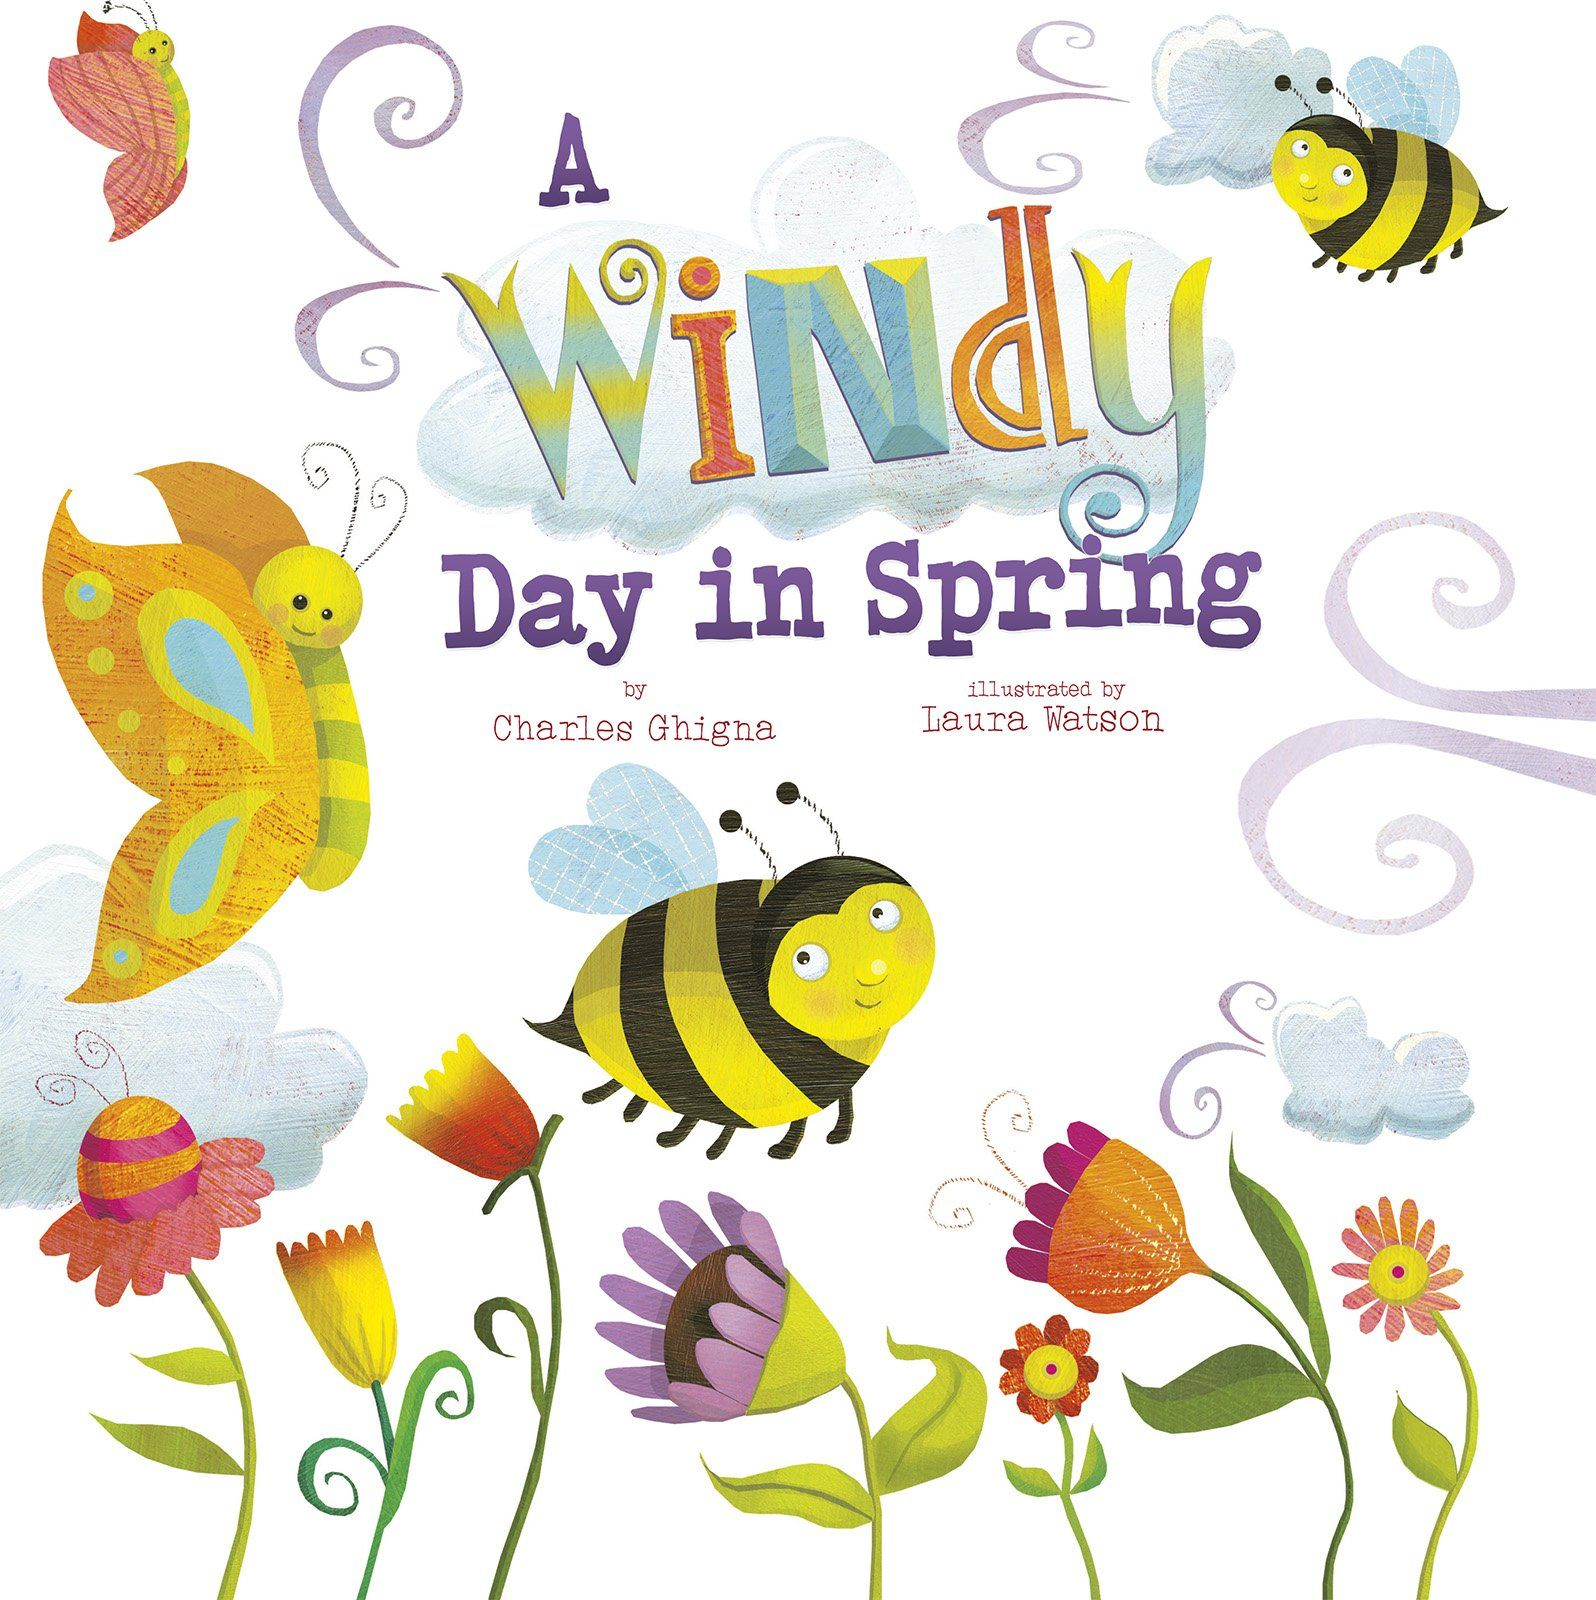 A Windy Day in Spring (Springtime Weather Wonders): Charles Ghigna, Laura Watson: 9781479560448: Amazon.com: Books